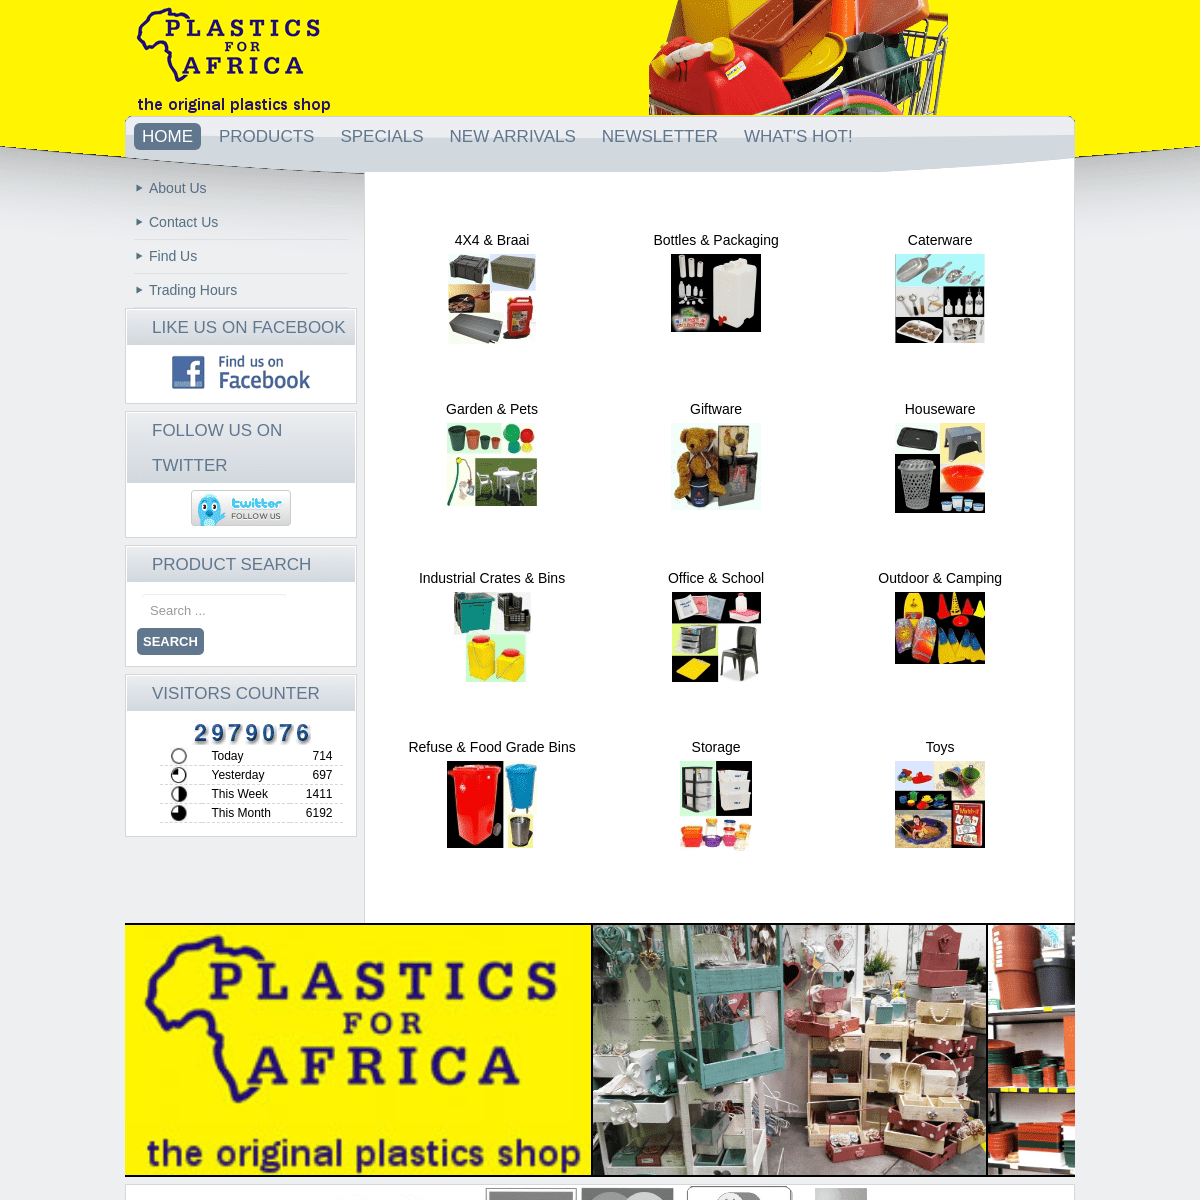 Welcome to Plastics for Africa